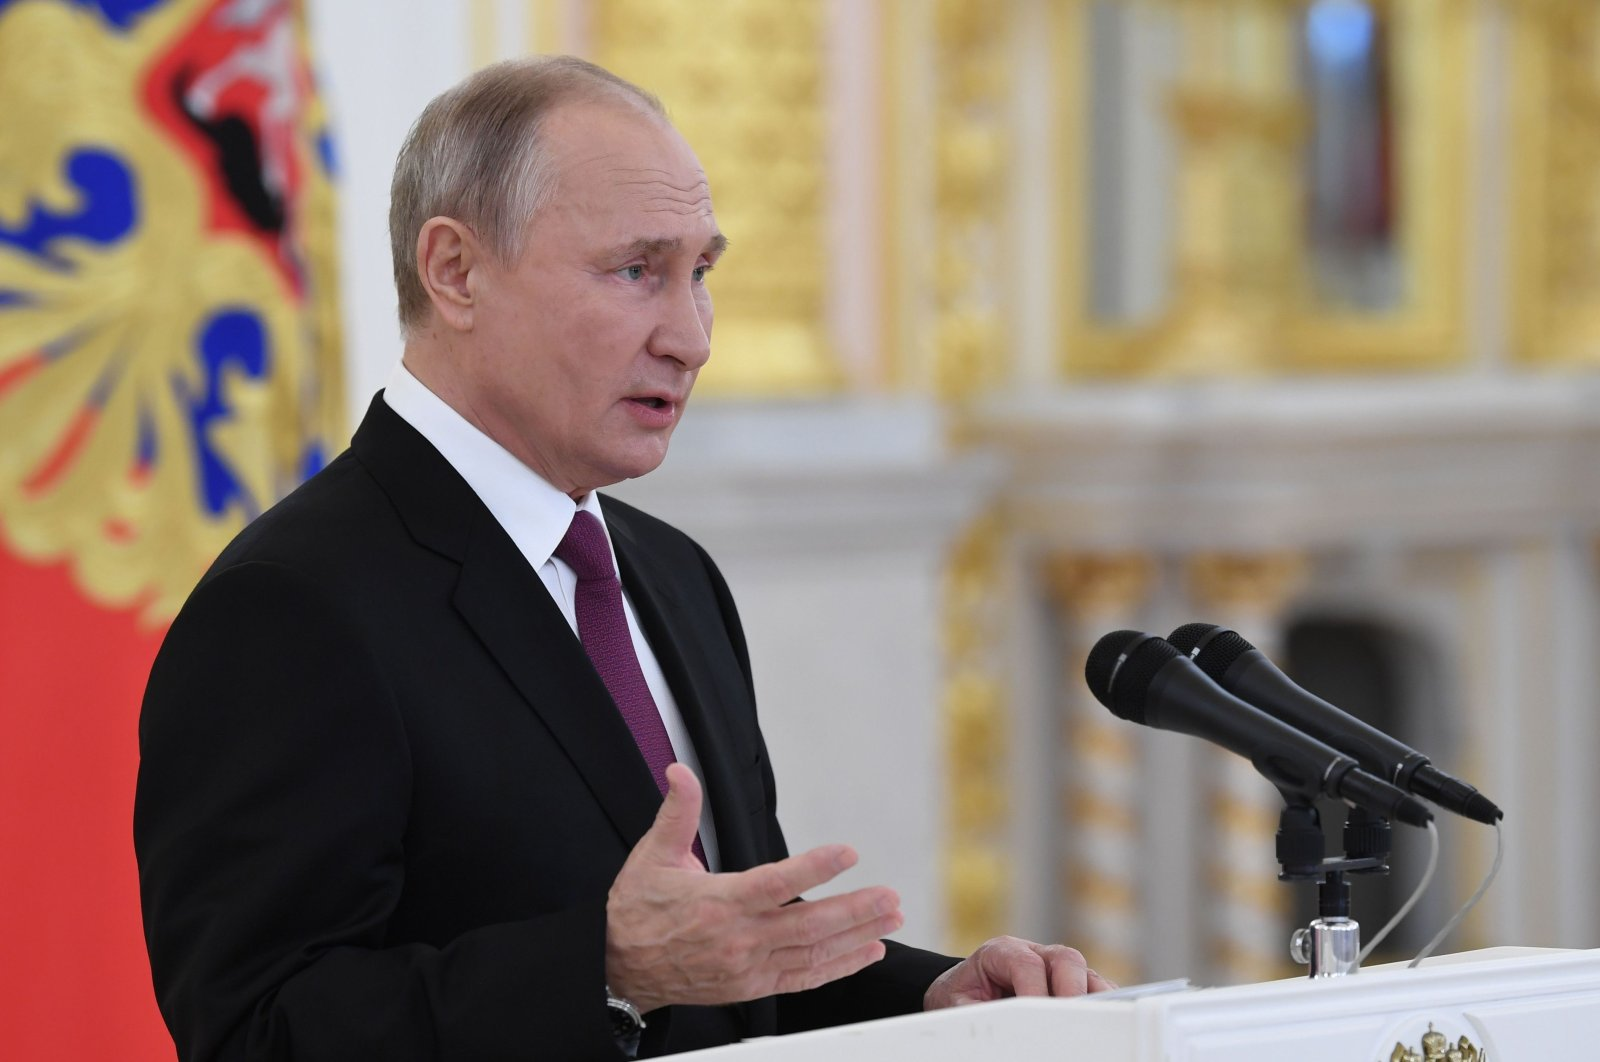 Russian President Vladimir Putin delivers a speech during a ceremony to receive credentials from foreign ambassadors at the Moscow Kremlin's Alexander Hall, in Moscow, on Nov. 24, 2020. (AFP Photo)